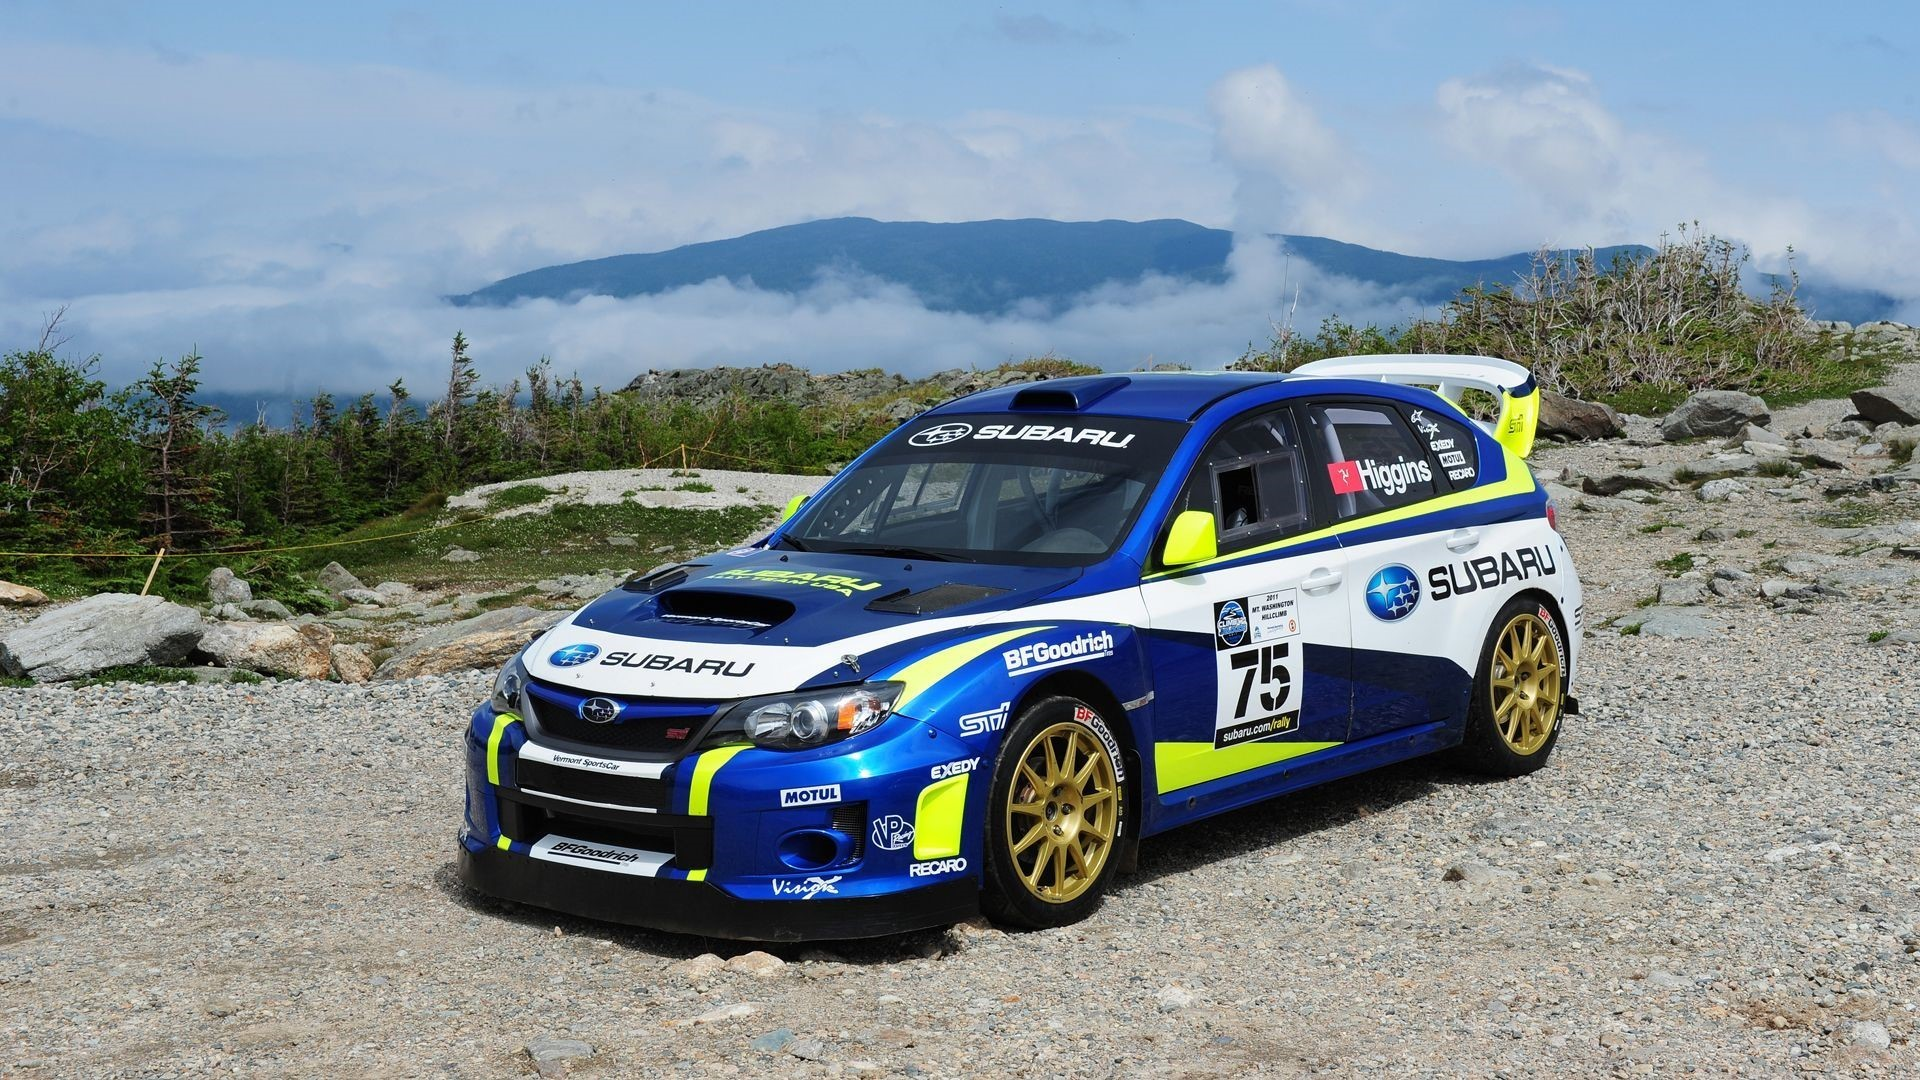 Subaru Rally Car UHD Wallpapers